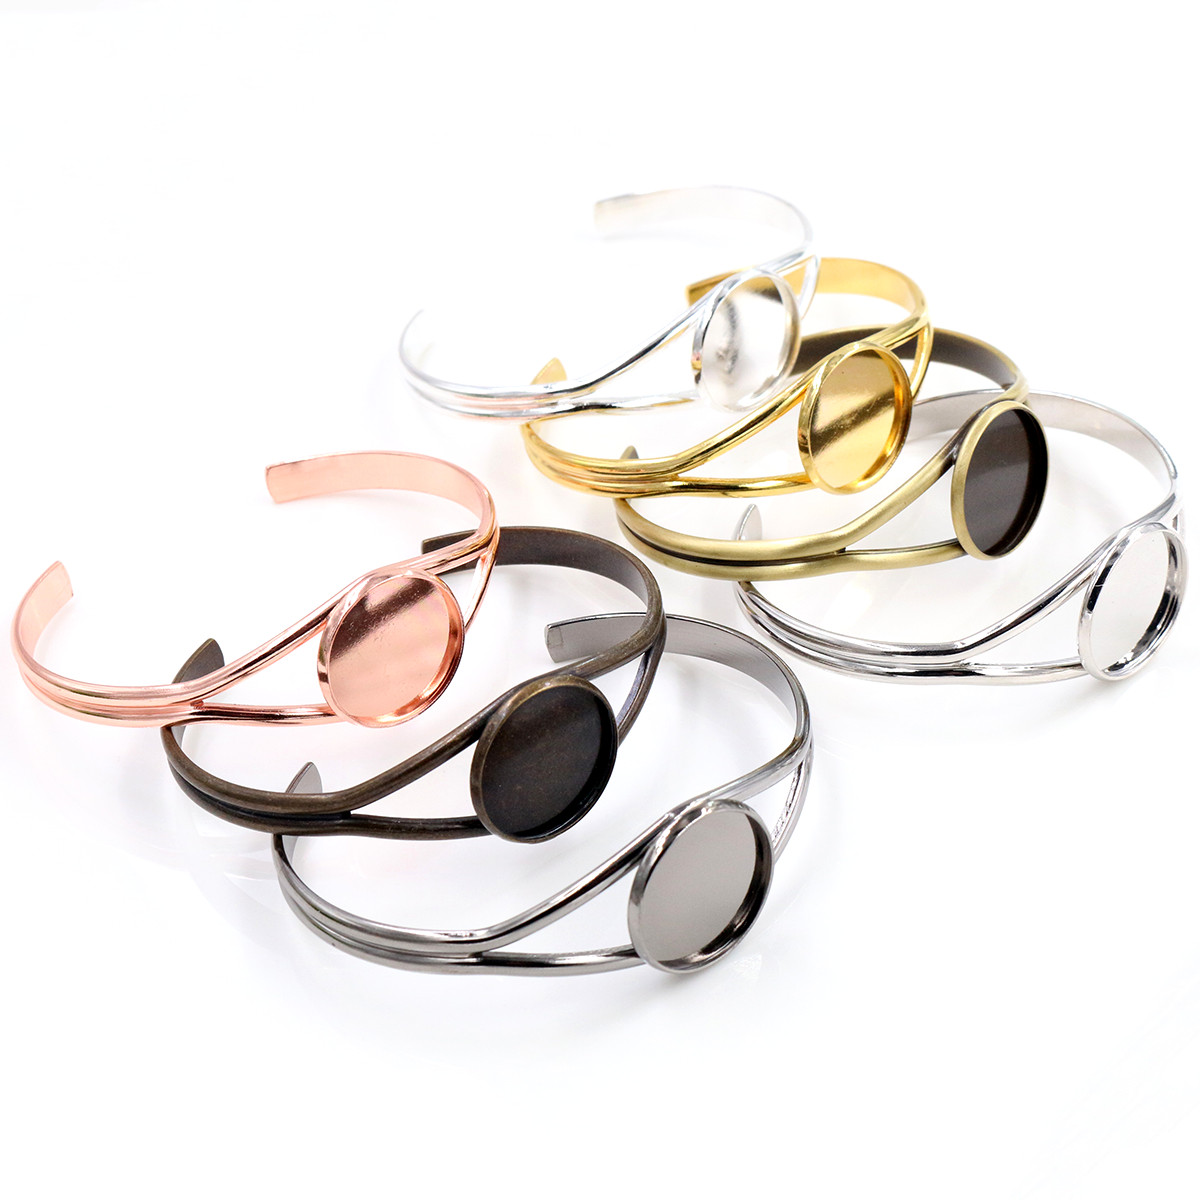 20mm 7 Colors Plated V Shape Bangle Settings Bracelet Cabochon Base Cameo Blank Bezel Tray High Quality Accessories